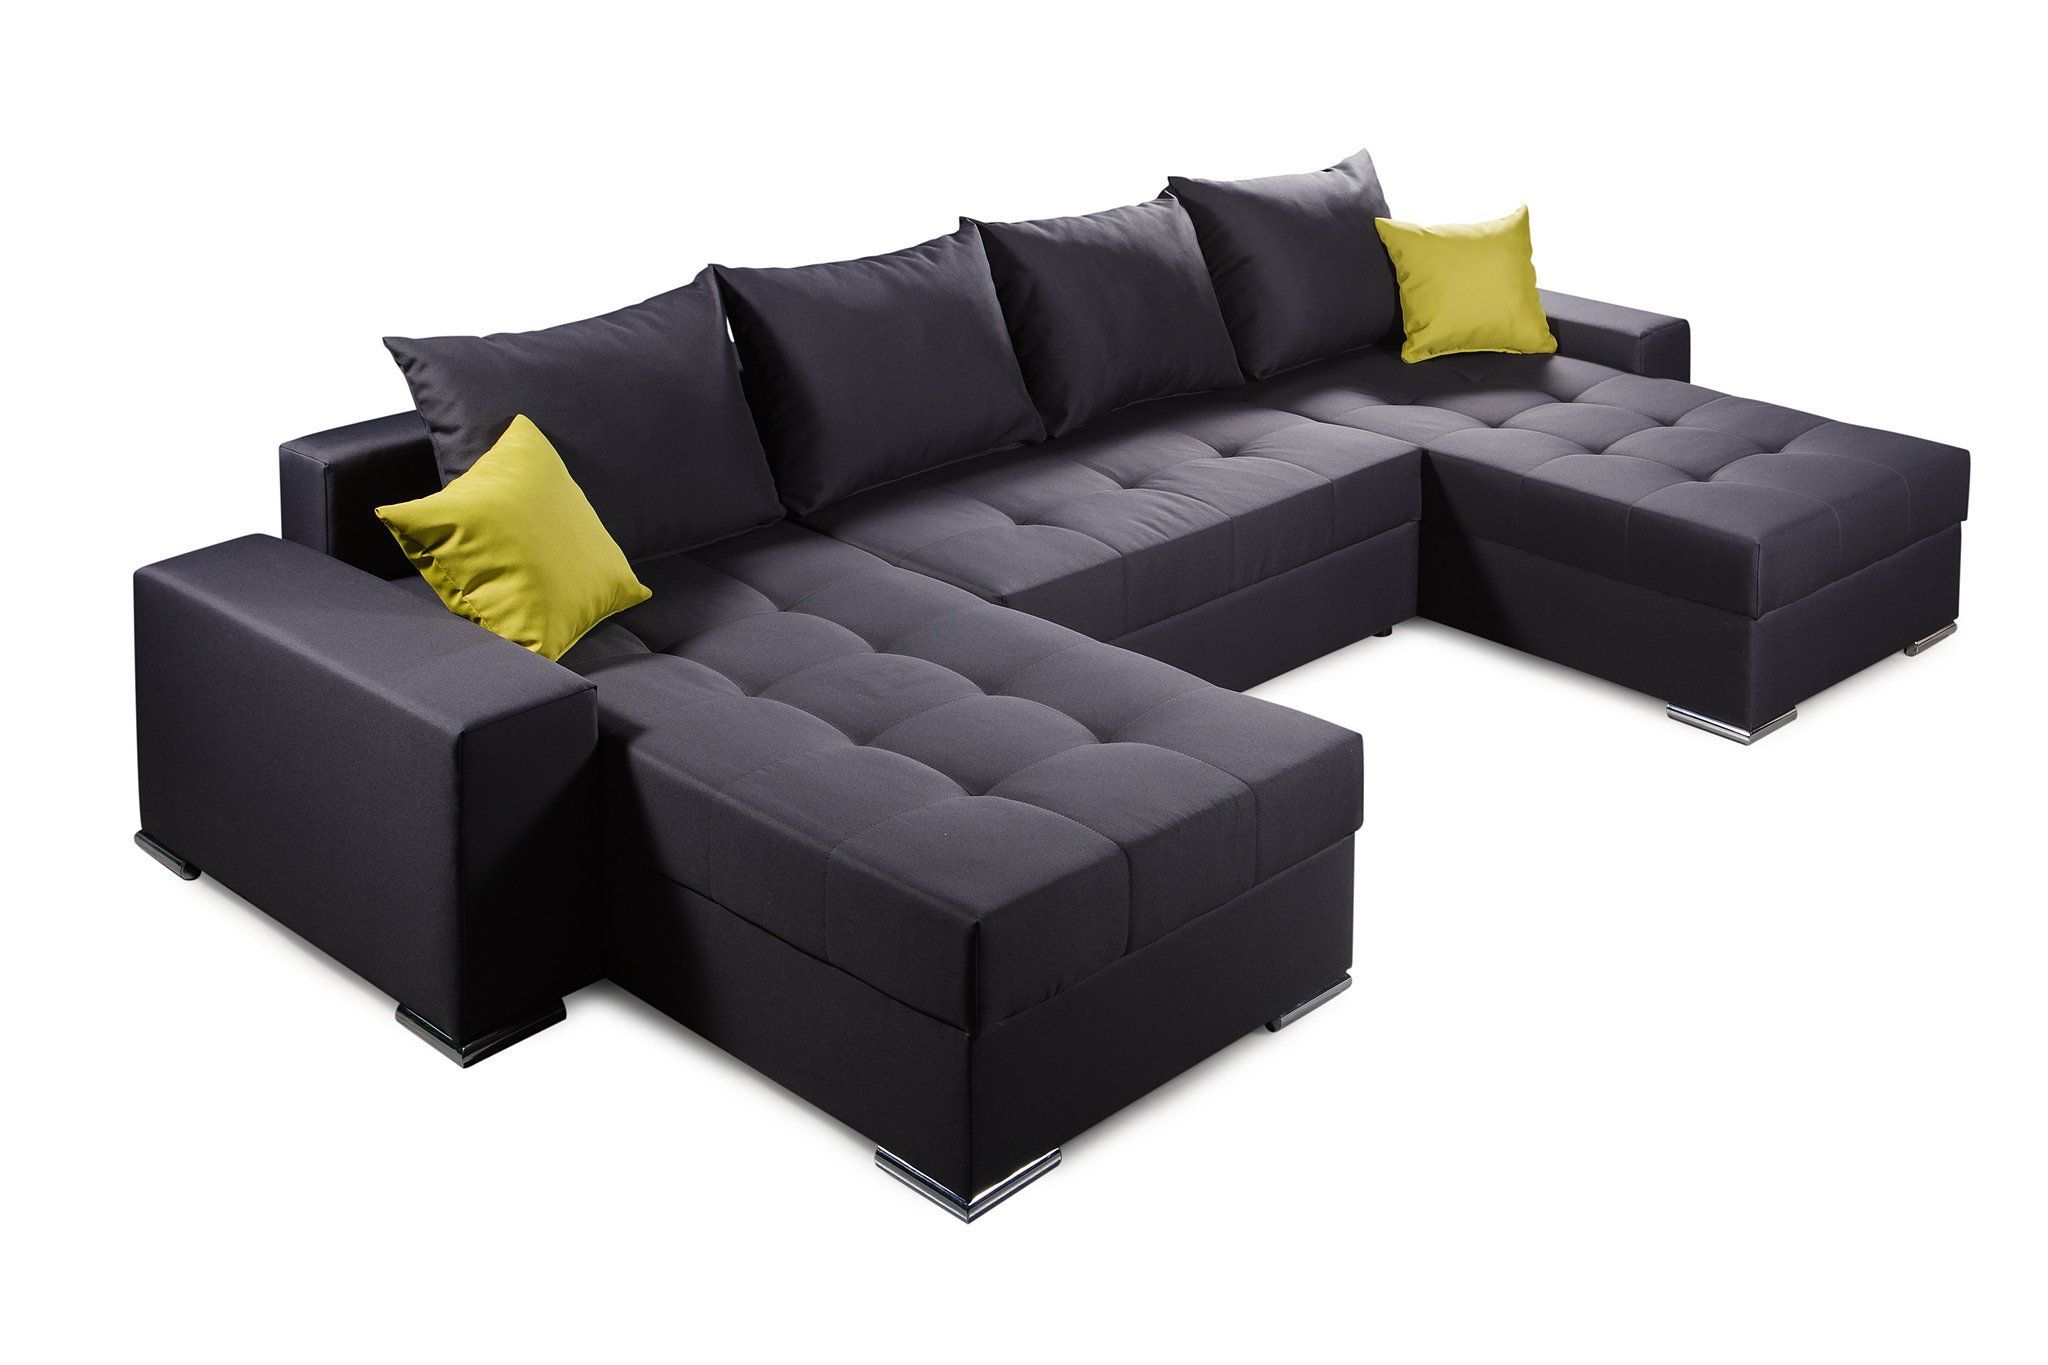 Collection Ab Jockey Ecksofa Stoff Anthrazit 161 X 313 X 64 Cm Anthrazit Anthrazitwohnzimmer Collection Ecksofa Jockey In 2020 Kunstleder Sofa Ecksofa Sofa